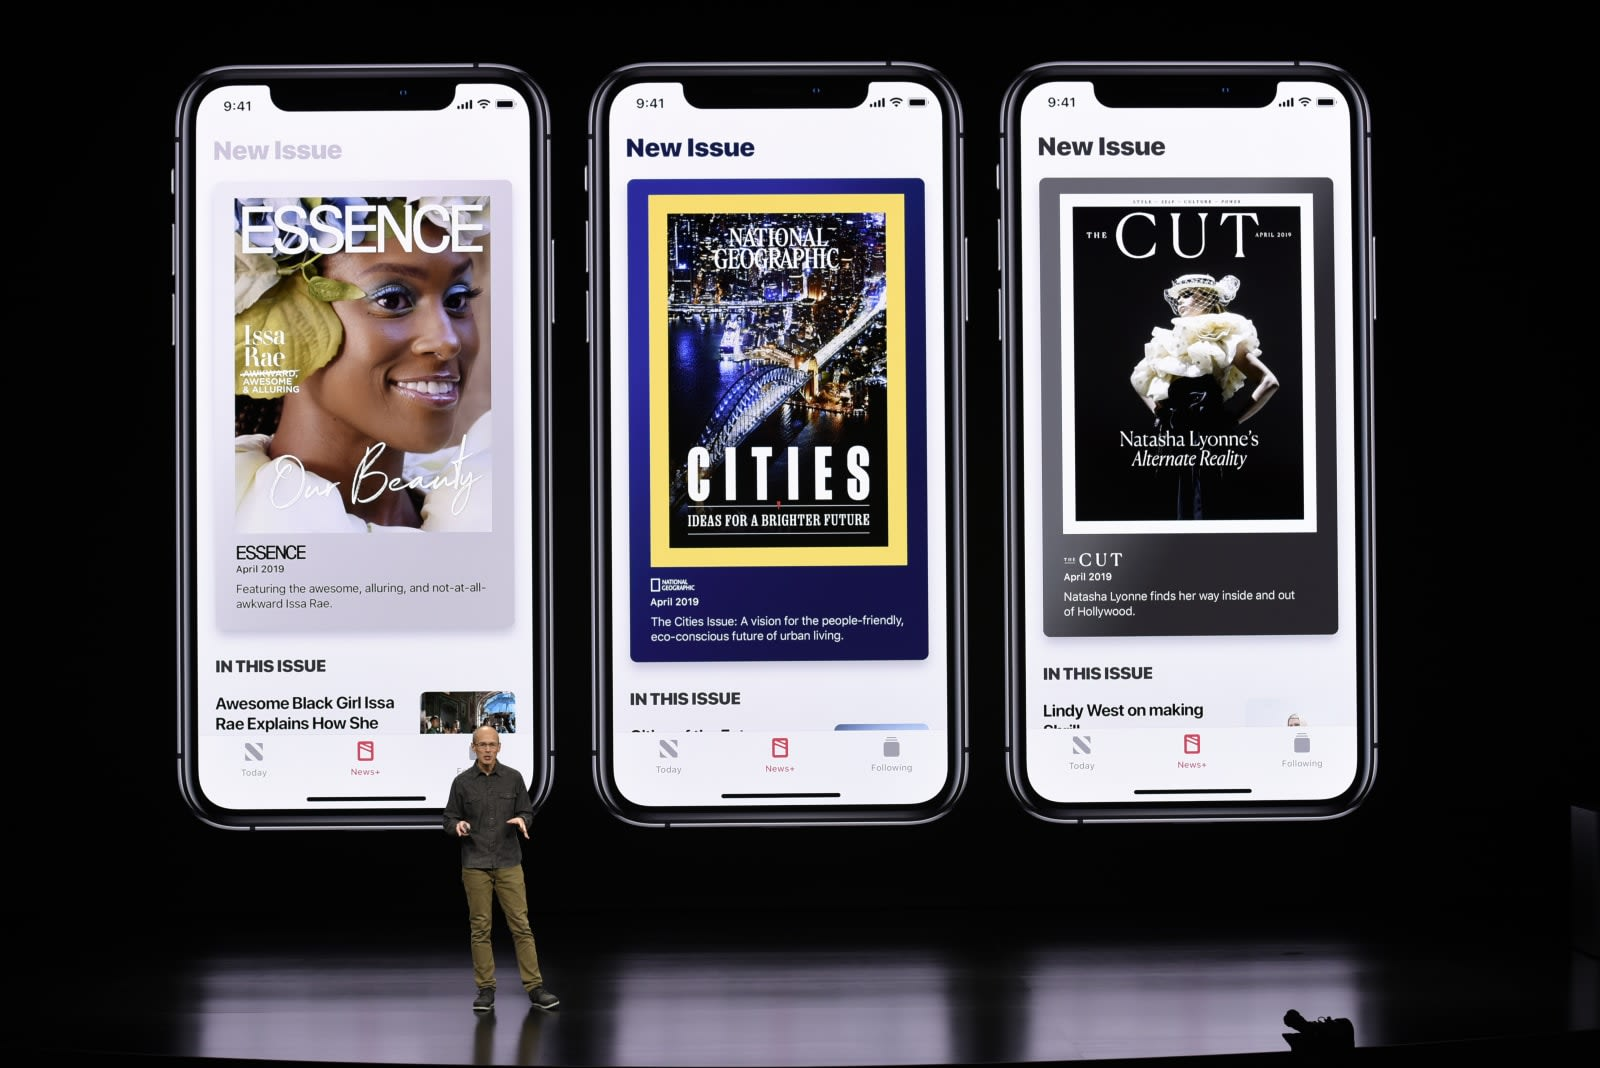 Apple News app kept crashing after iOS 12 2 update